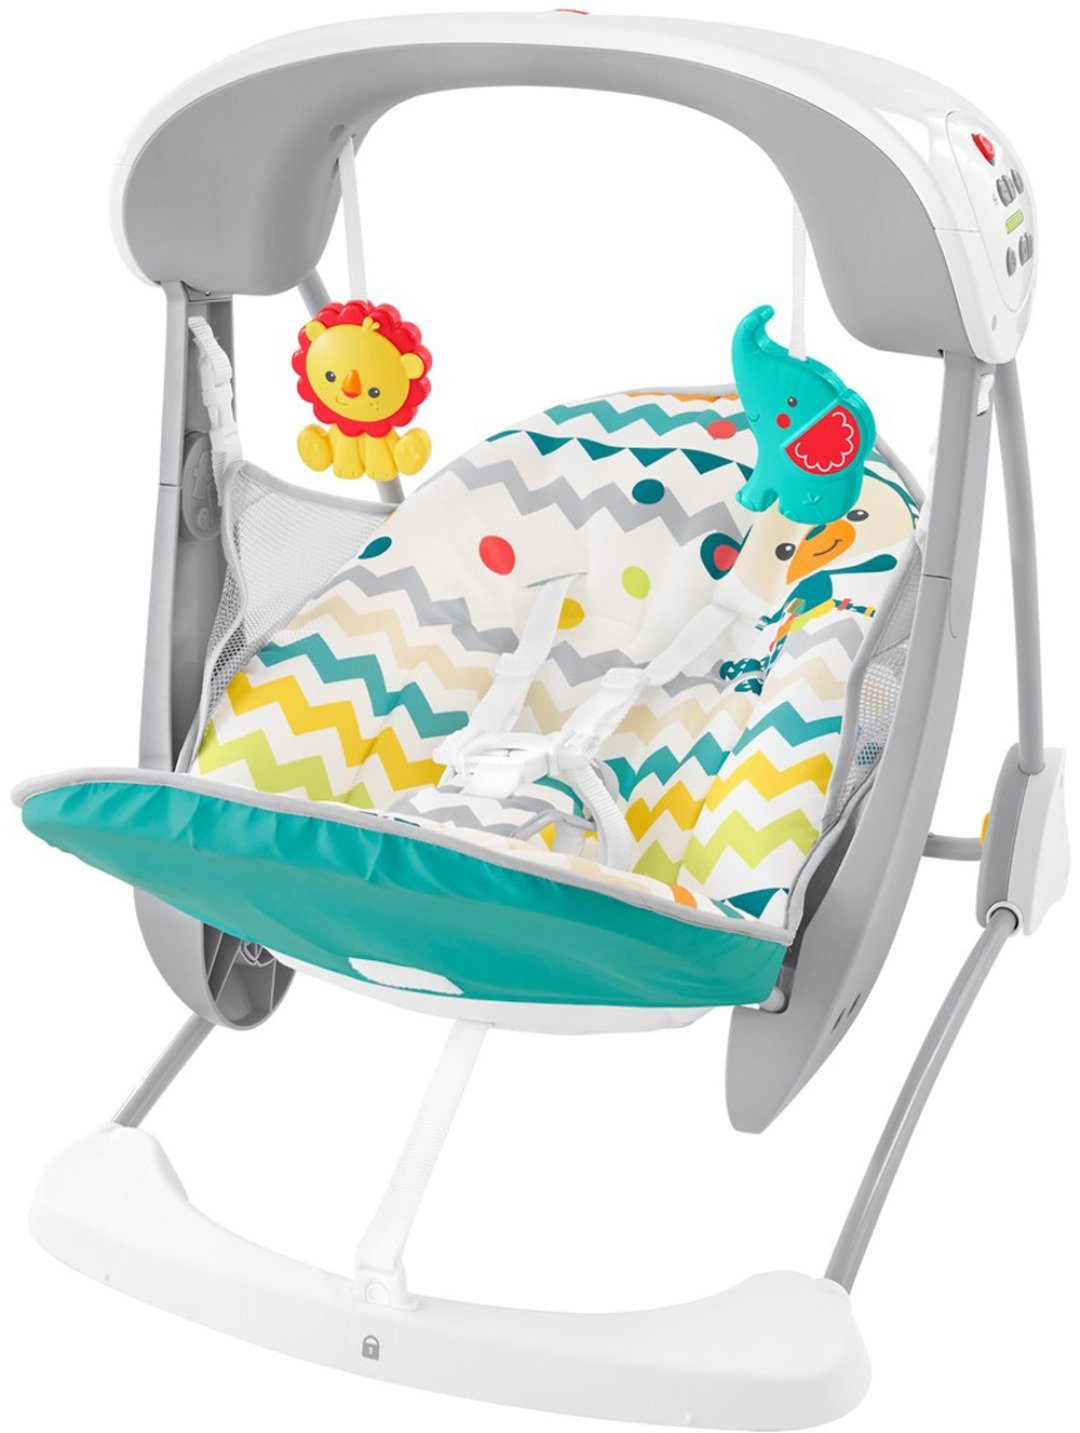 Fisher-Price Deluxe Take-Along Swing /& Seat